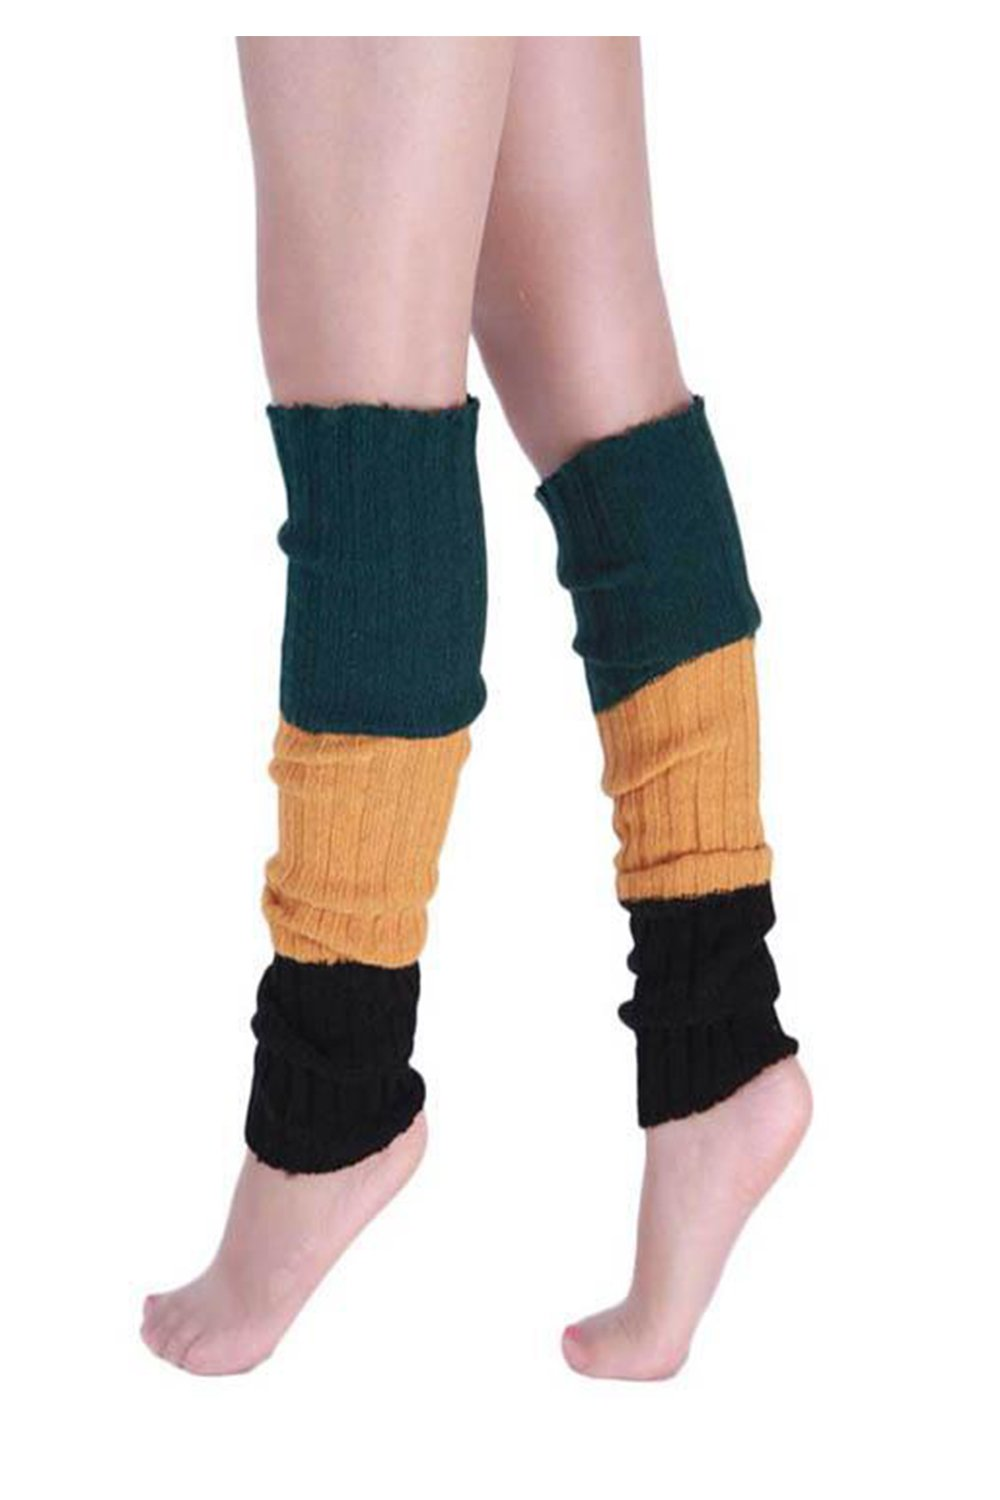 YACUN Women's Winter Cold Weather Color Block Knit Leg Warmers Coffee F CAOK1111Coffee_F